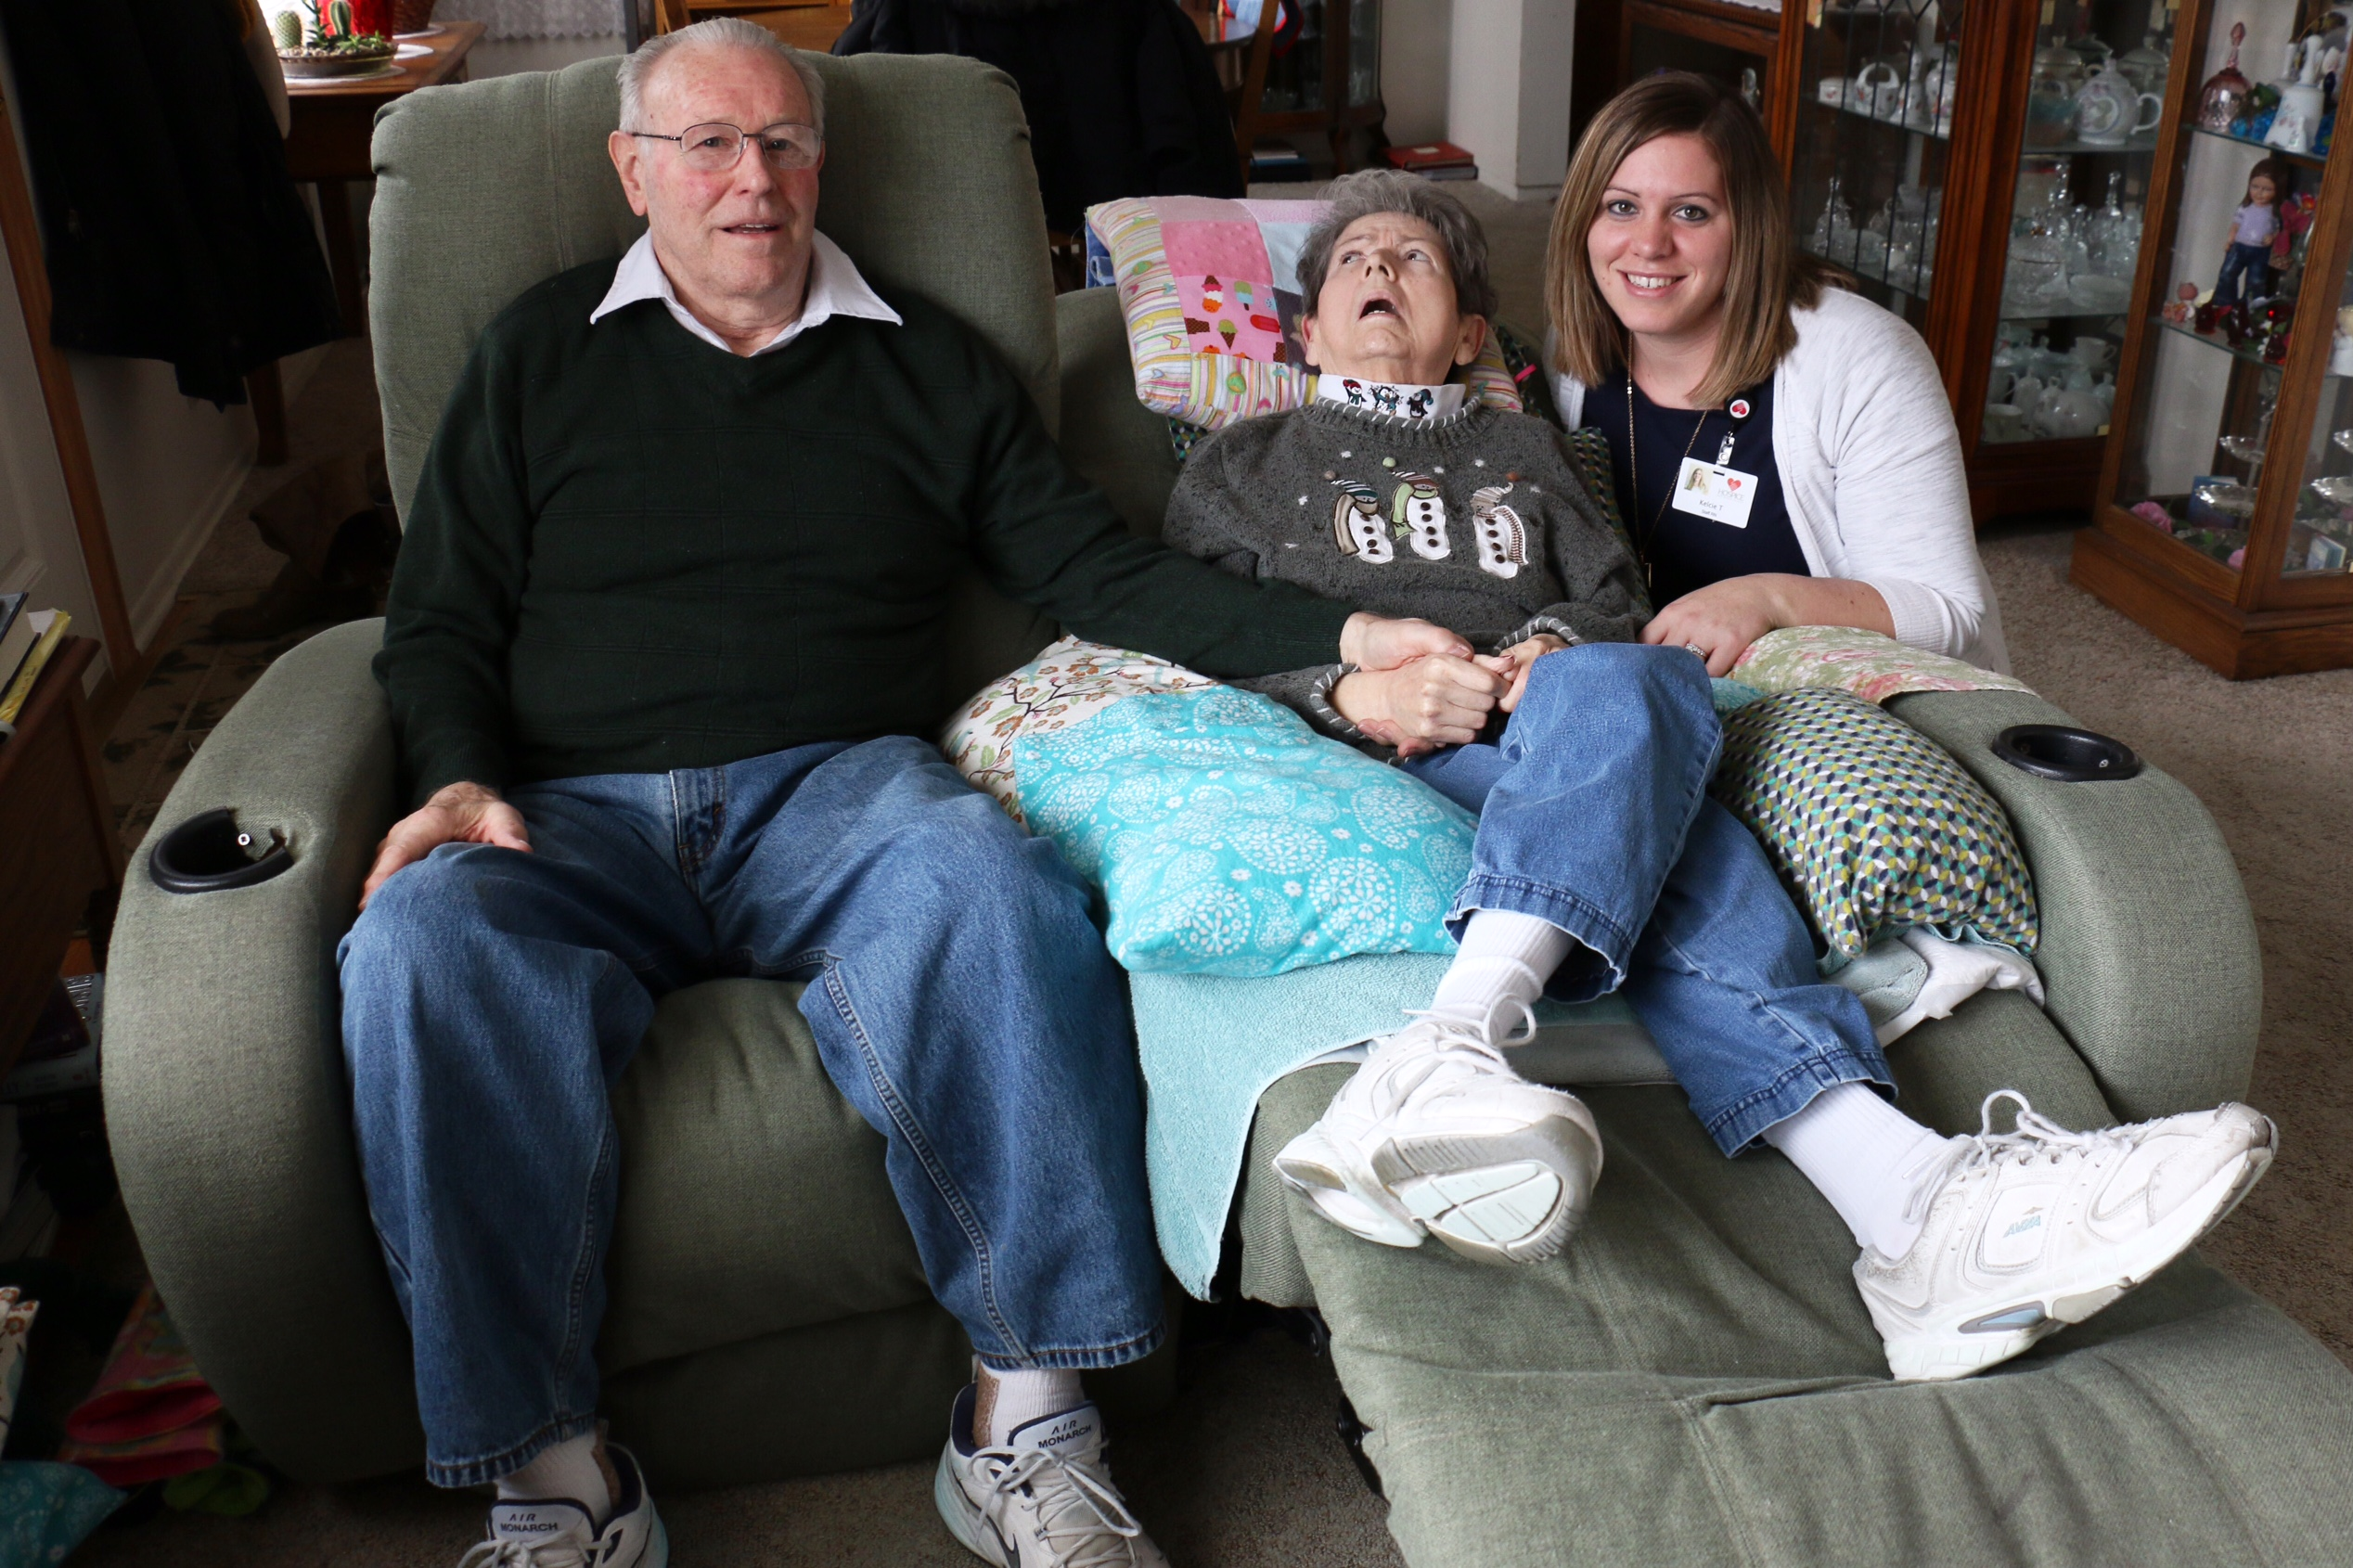 Embracing the Final Journey: Hospice Helps Husband Care for Wife with Alzheimer's